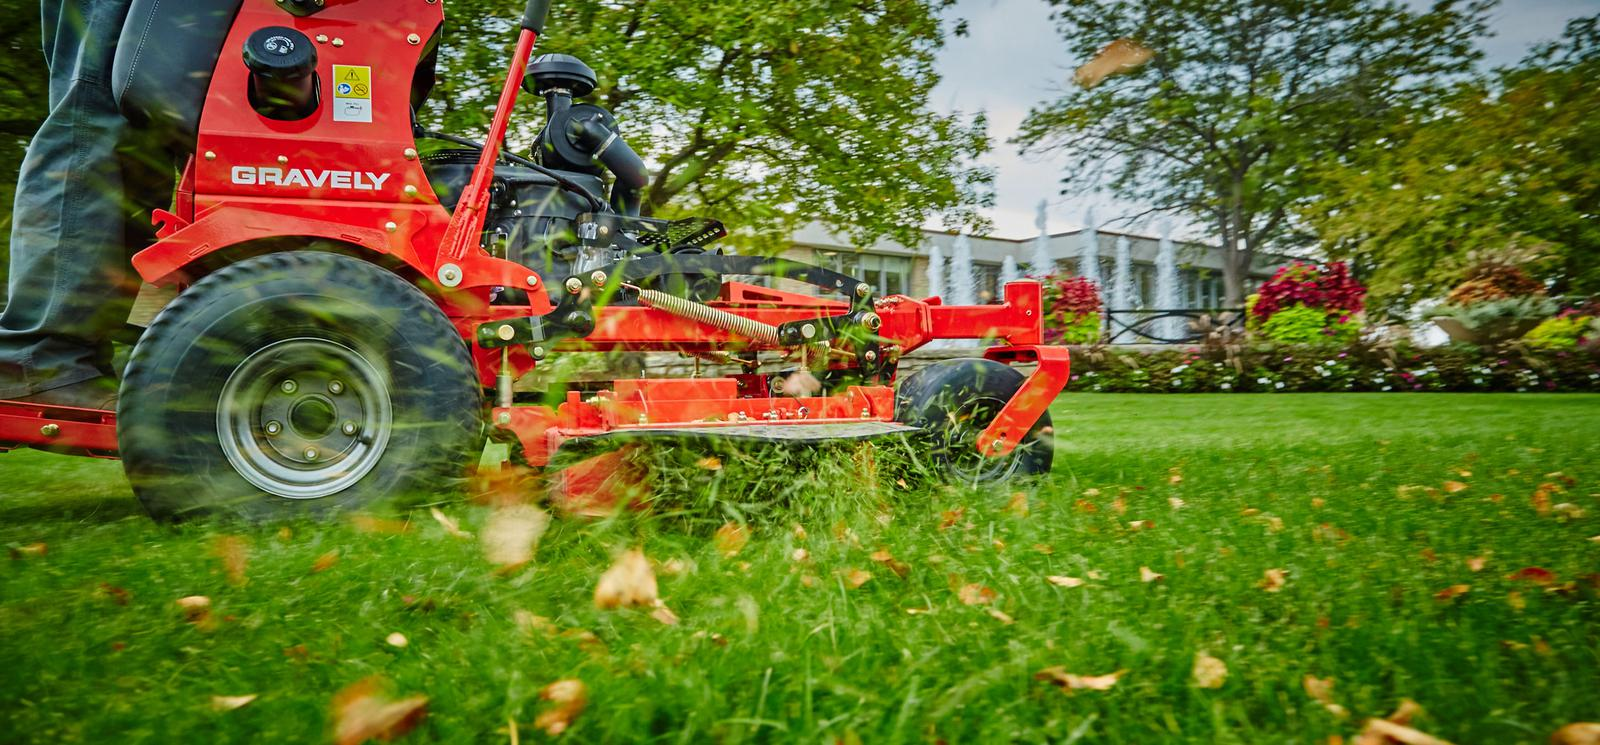 Closeup of a Gravely lawn tractor